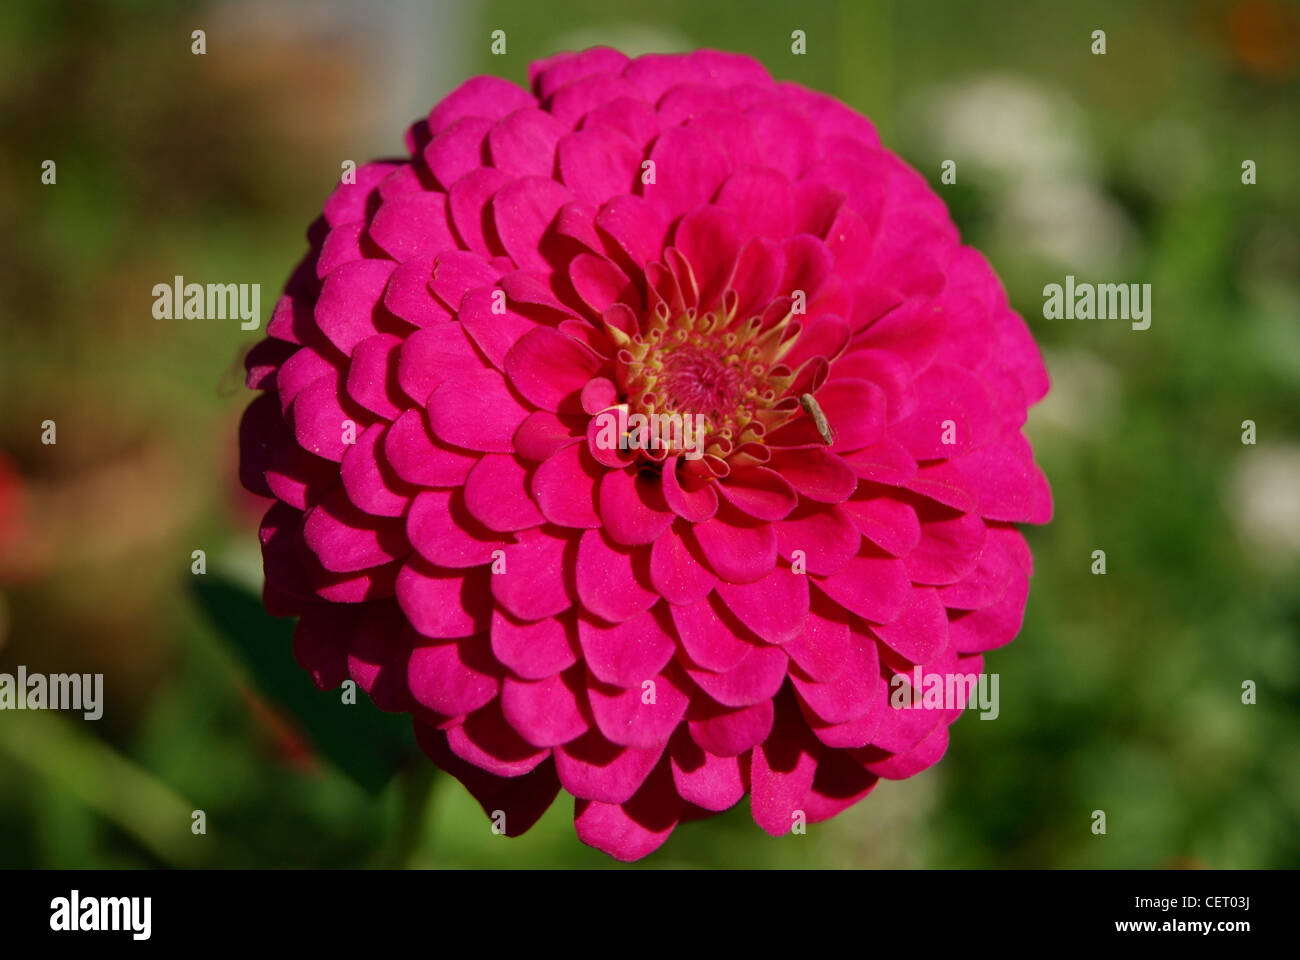 India dahlia flower stock photos india dahlia flower stock images red dahlia flower in green gardenralaindia stock image izmirmasajfo